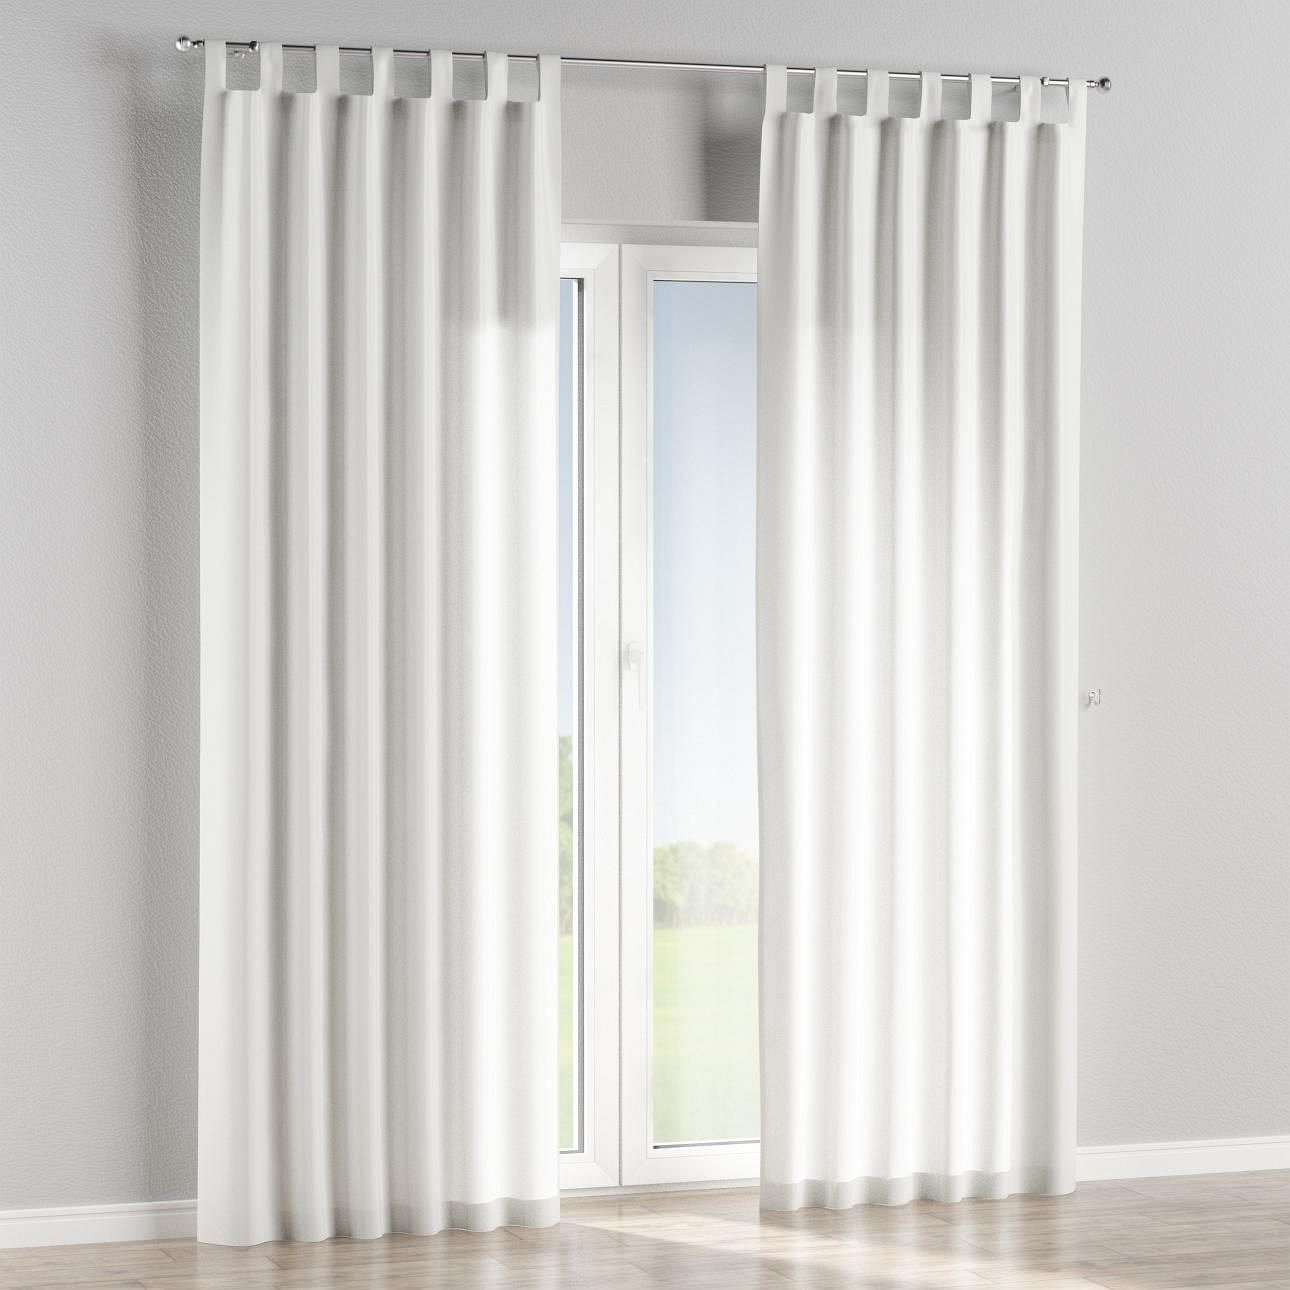 Tab top lined curtains in collection Ashley, fabric: 137-49